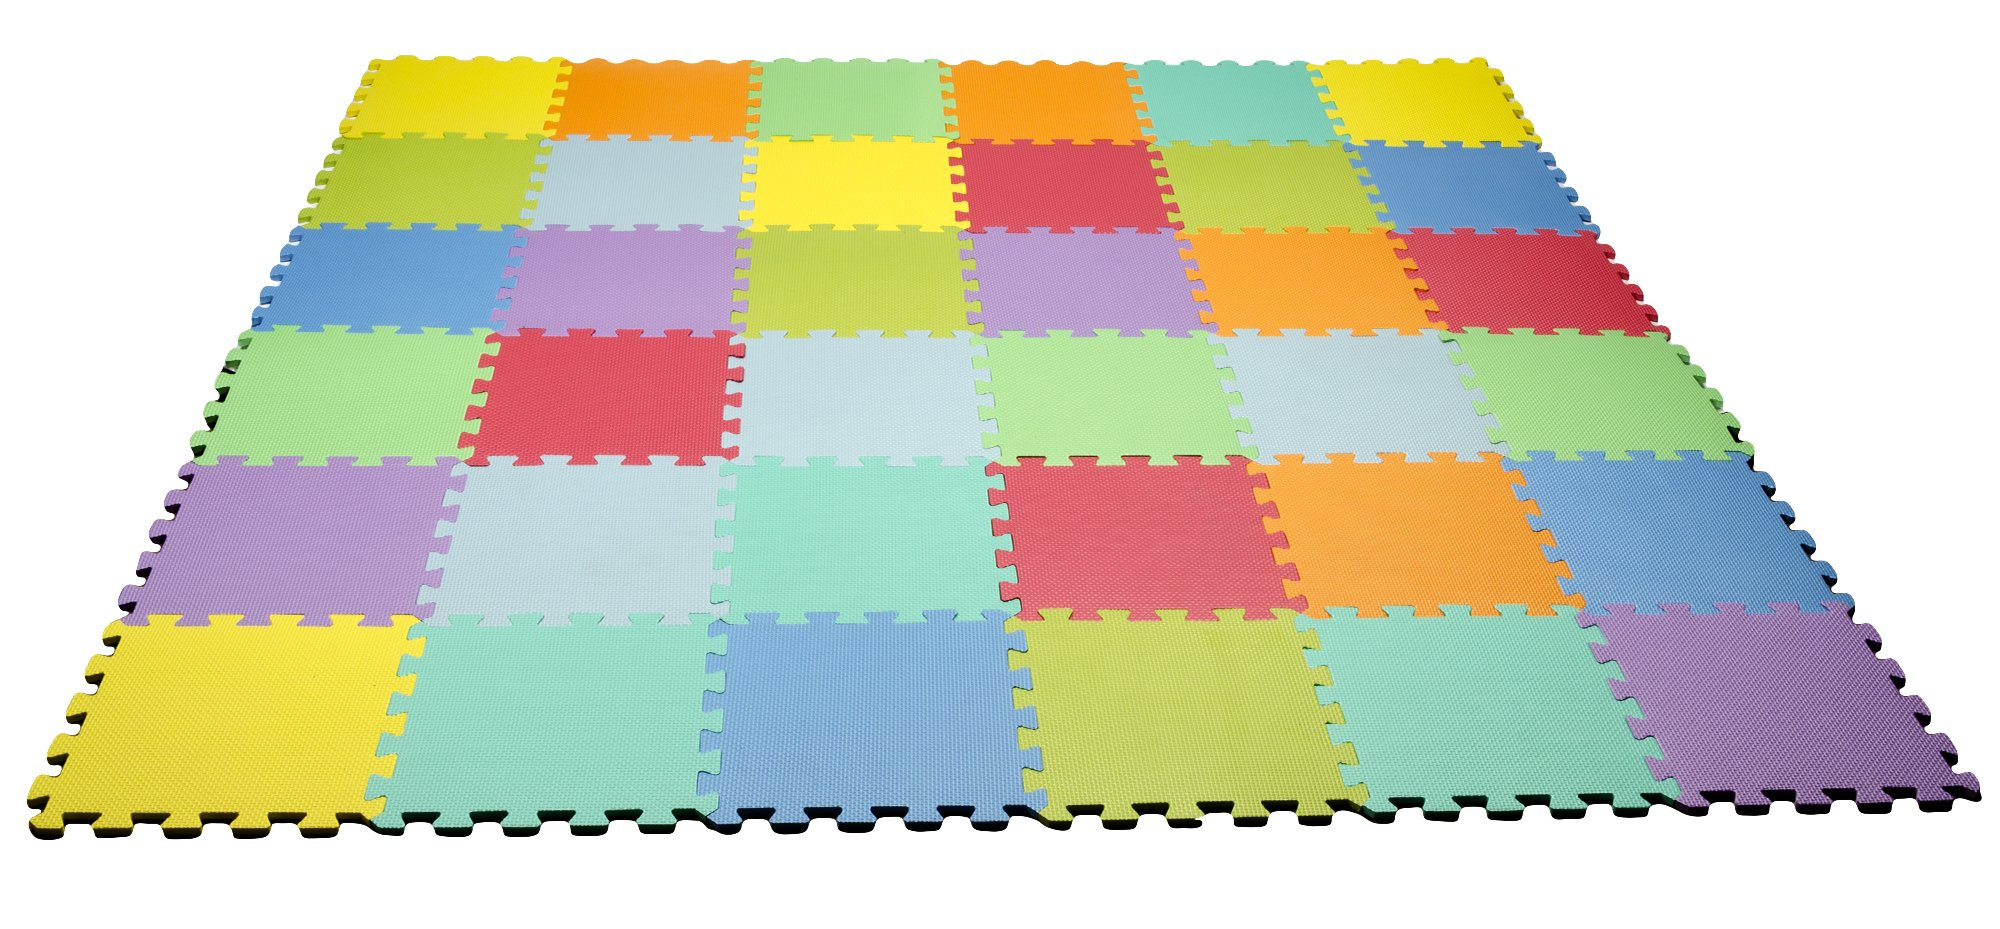 HemingWeigh Kids Multicolored Interlocking Puzzle Play Mat - 36 Tiles - Soft and Safe EVA Foam - Excellent for Day Care's, Play Rooms, Baby Rooms, and playgrounds